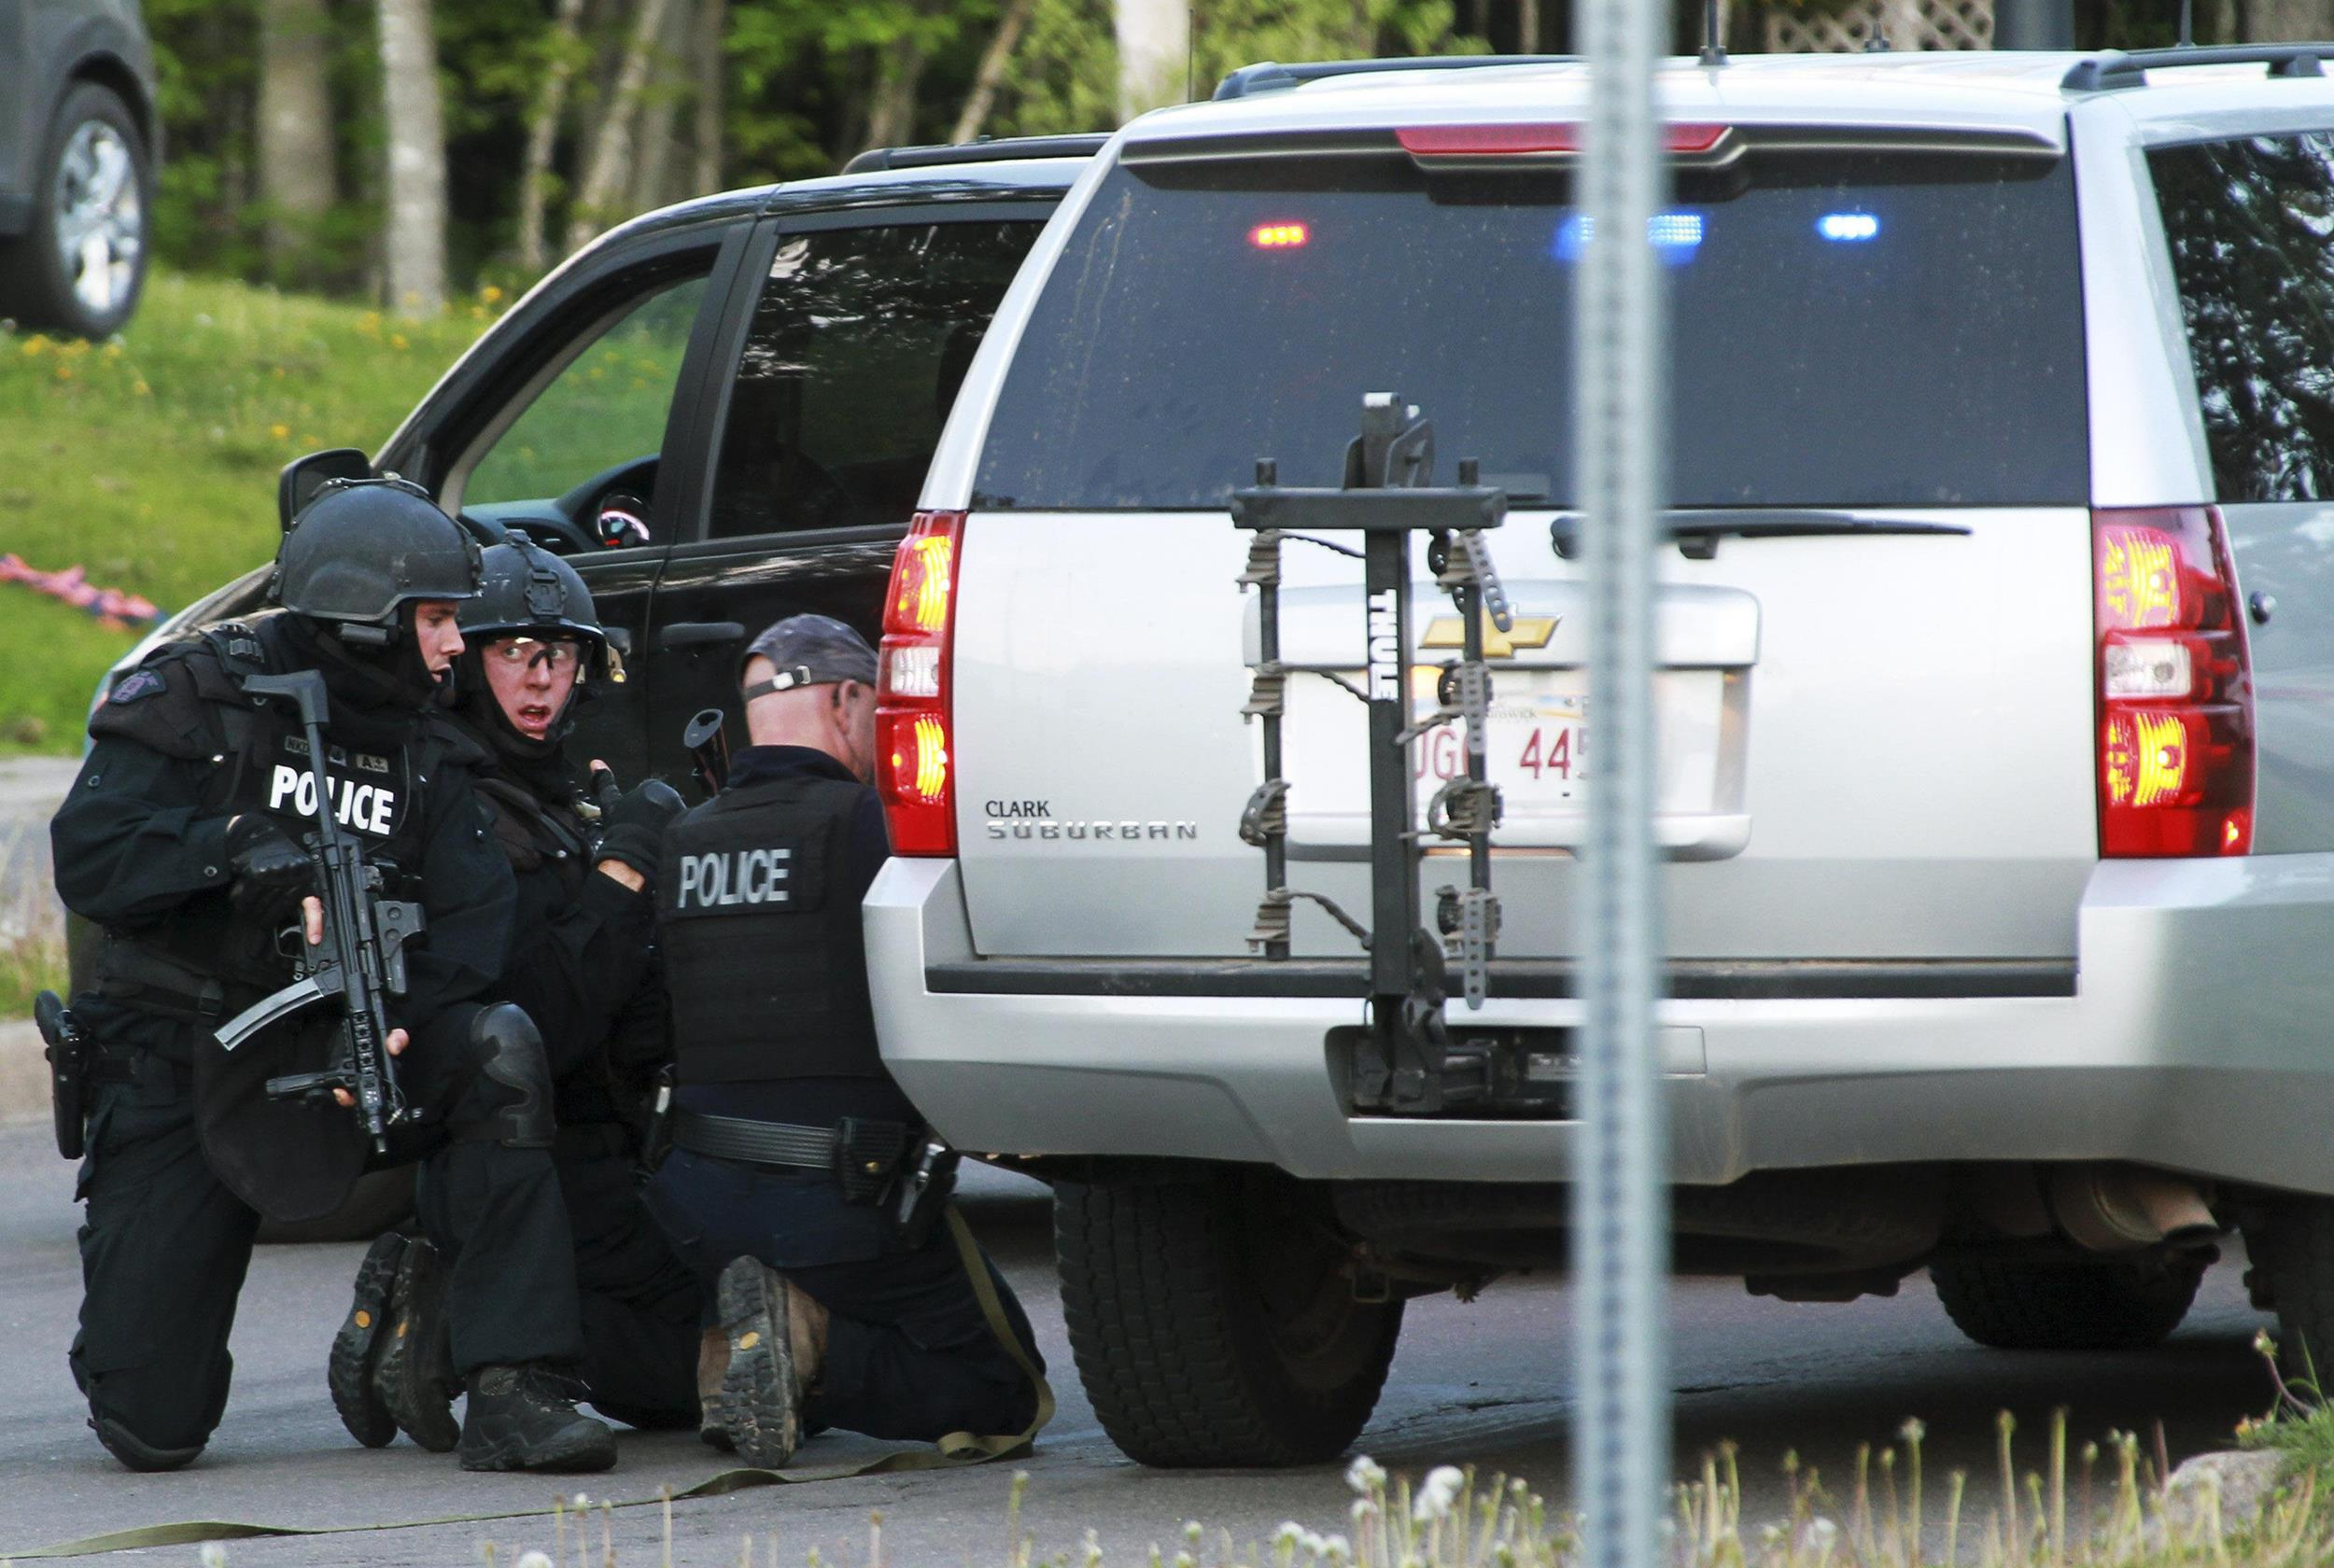 Image: Emergency Response team members take cover behind vehicles in Moncton, New Brunswick